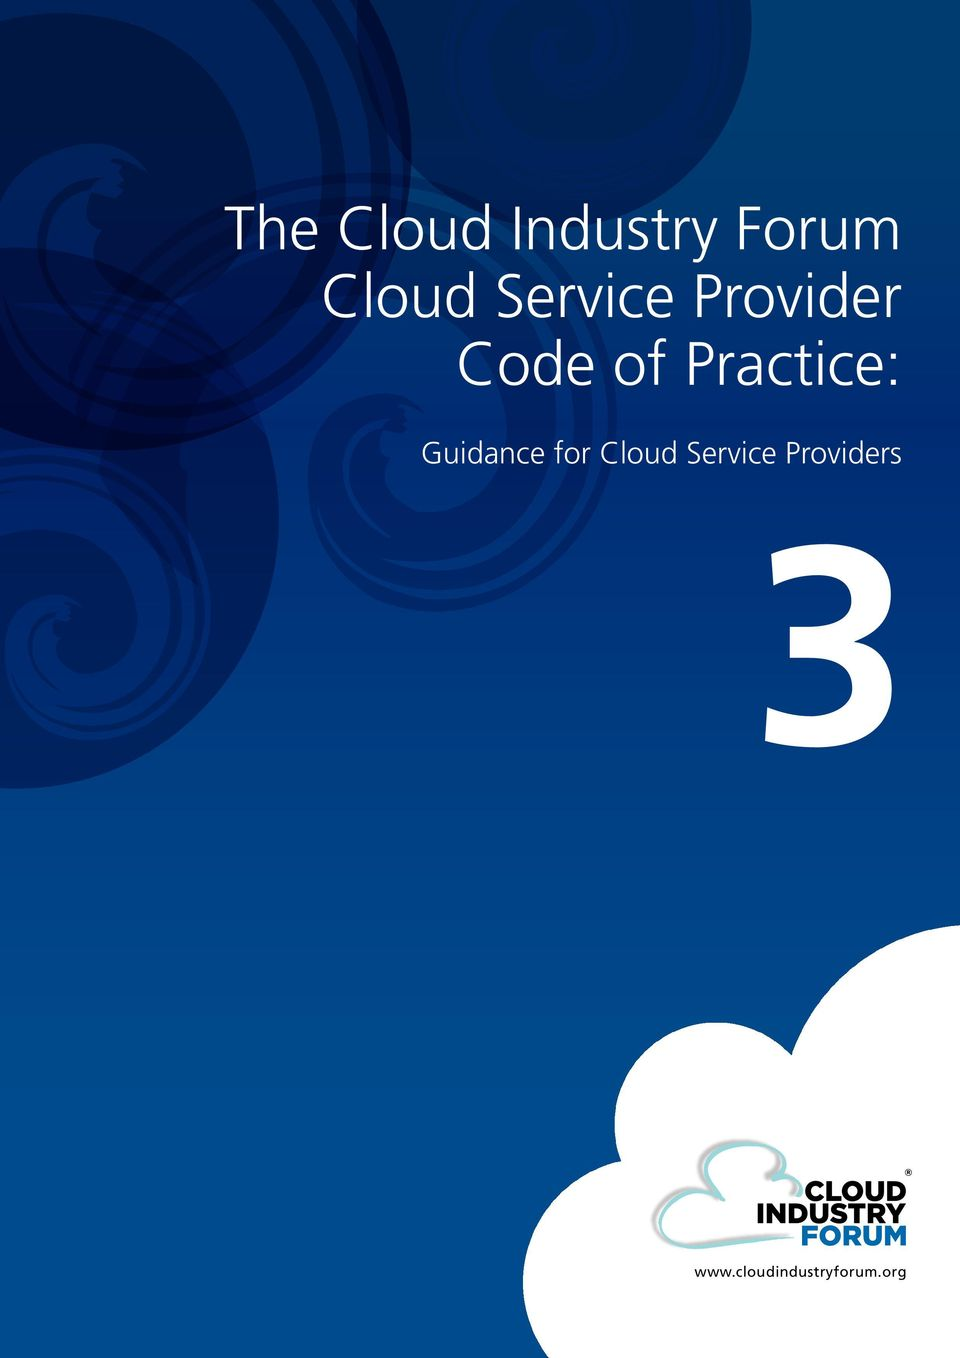 Practice: Guidance for Cloud